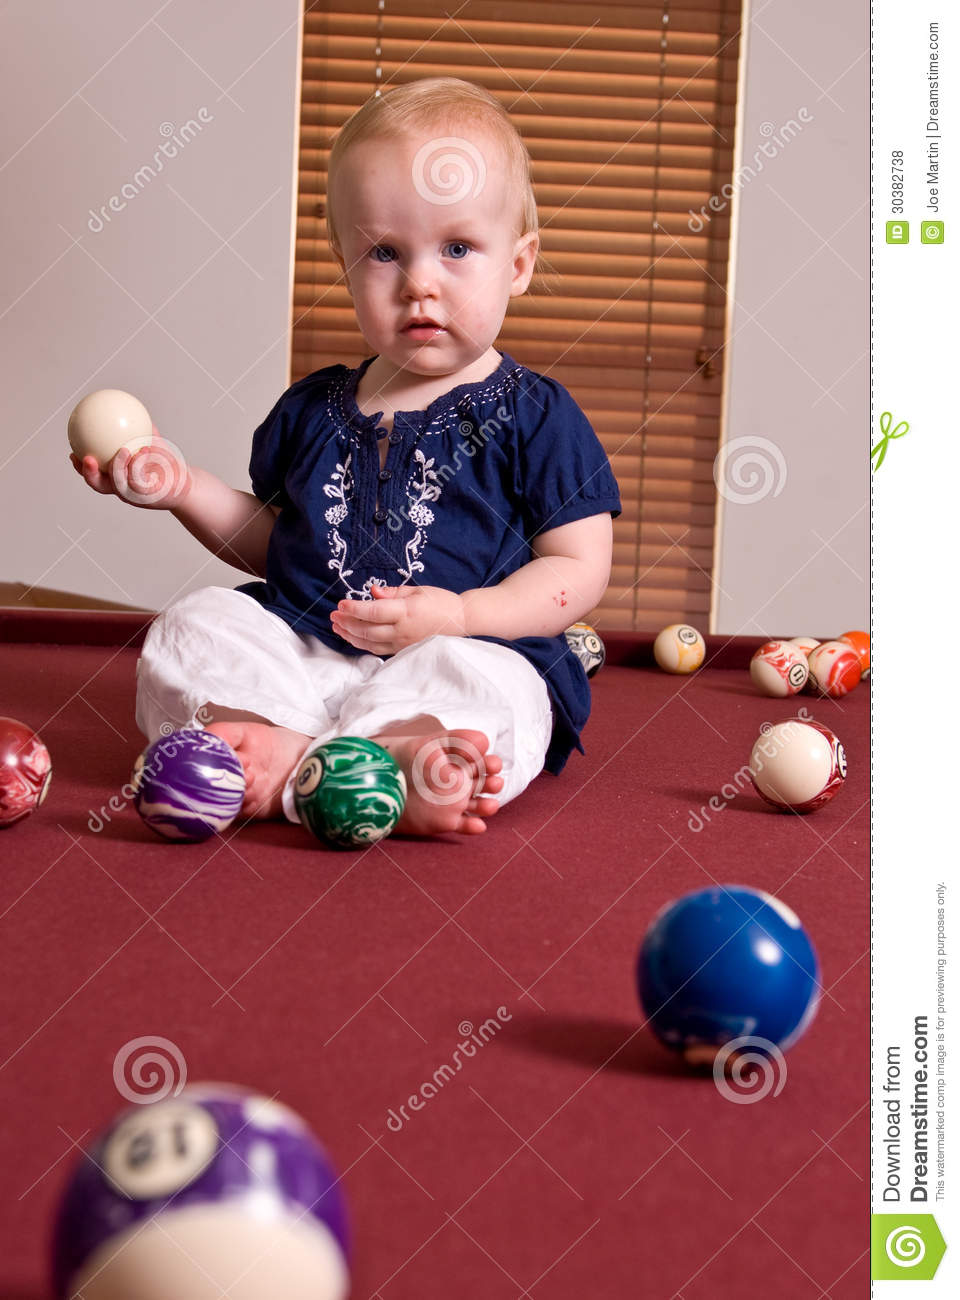 Young child sitting on a billiard table holding a cue ball